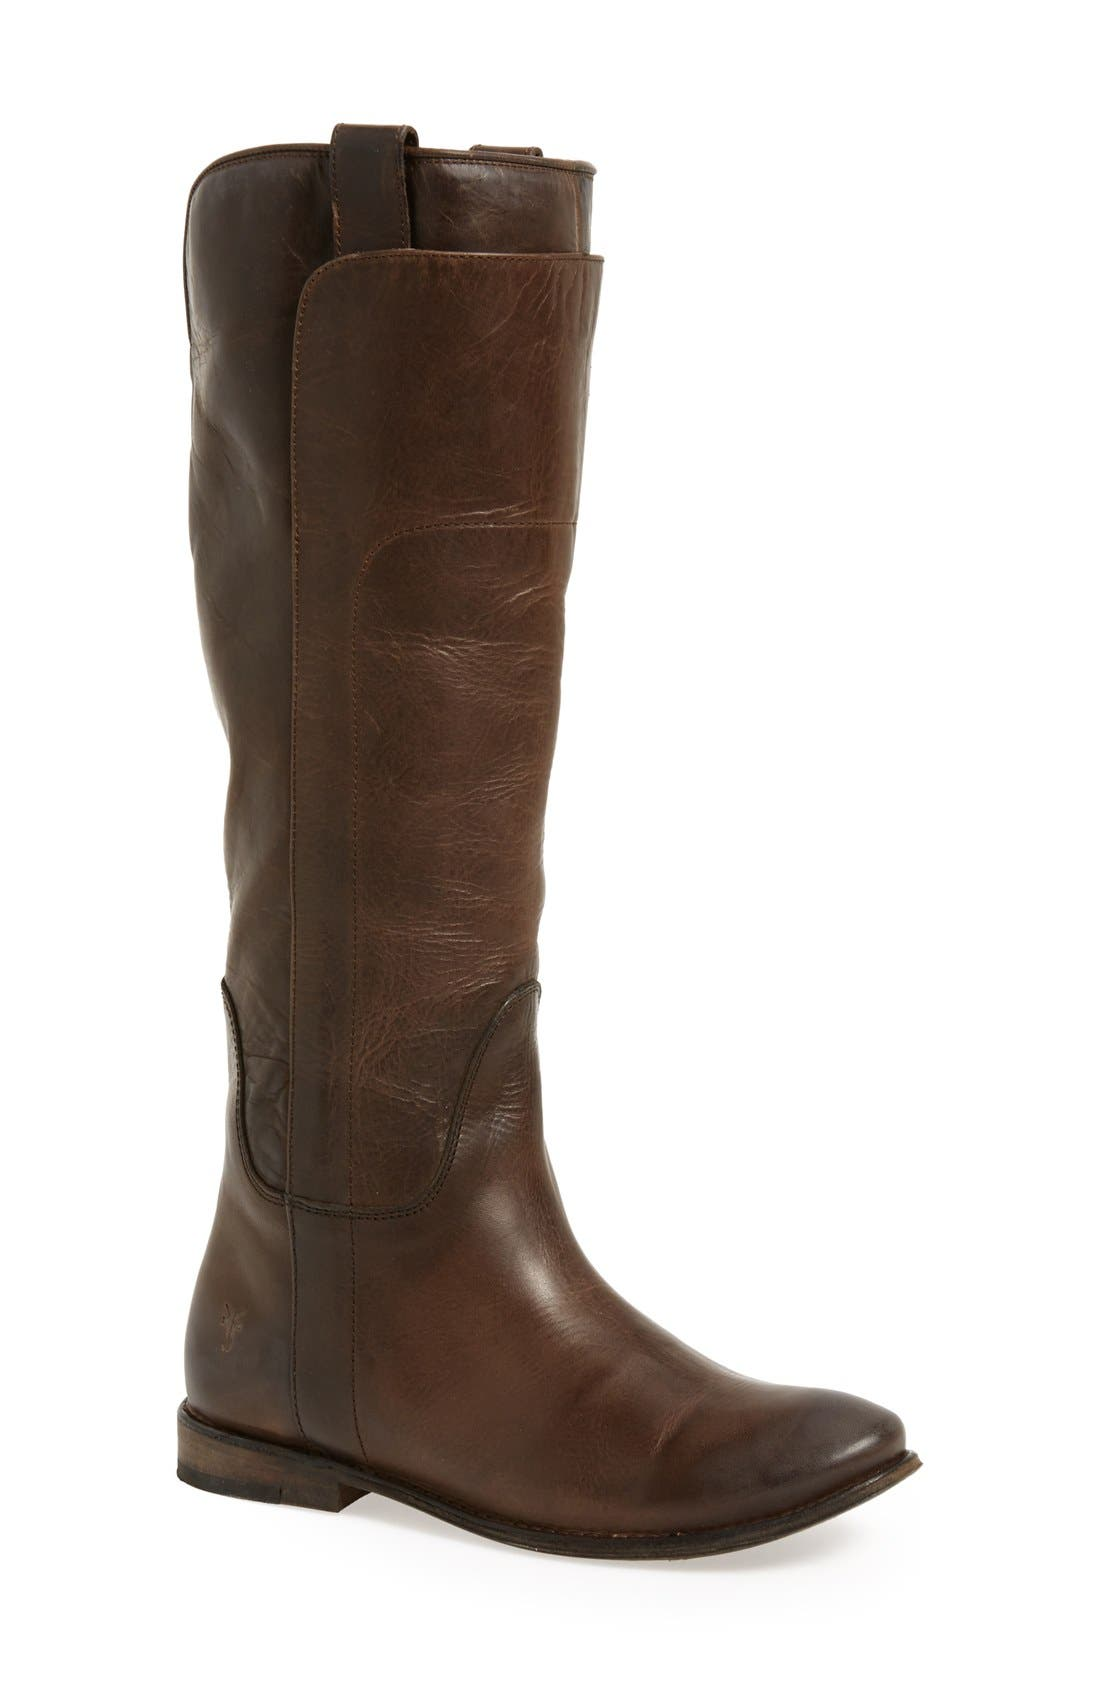 Main Image - Frye 'Paige' Tall Riding Boot (Women)